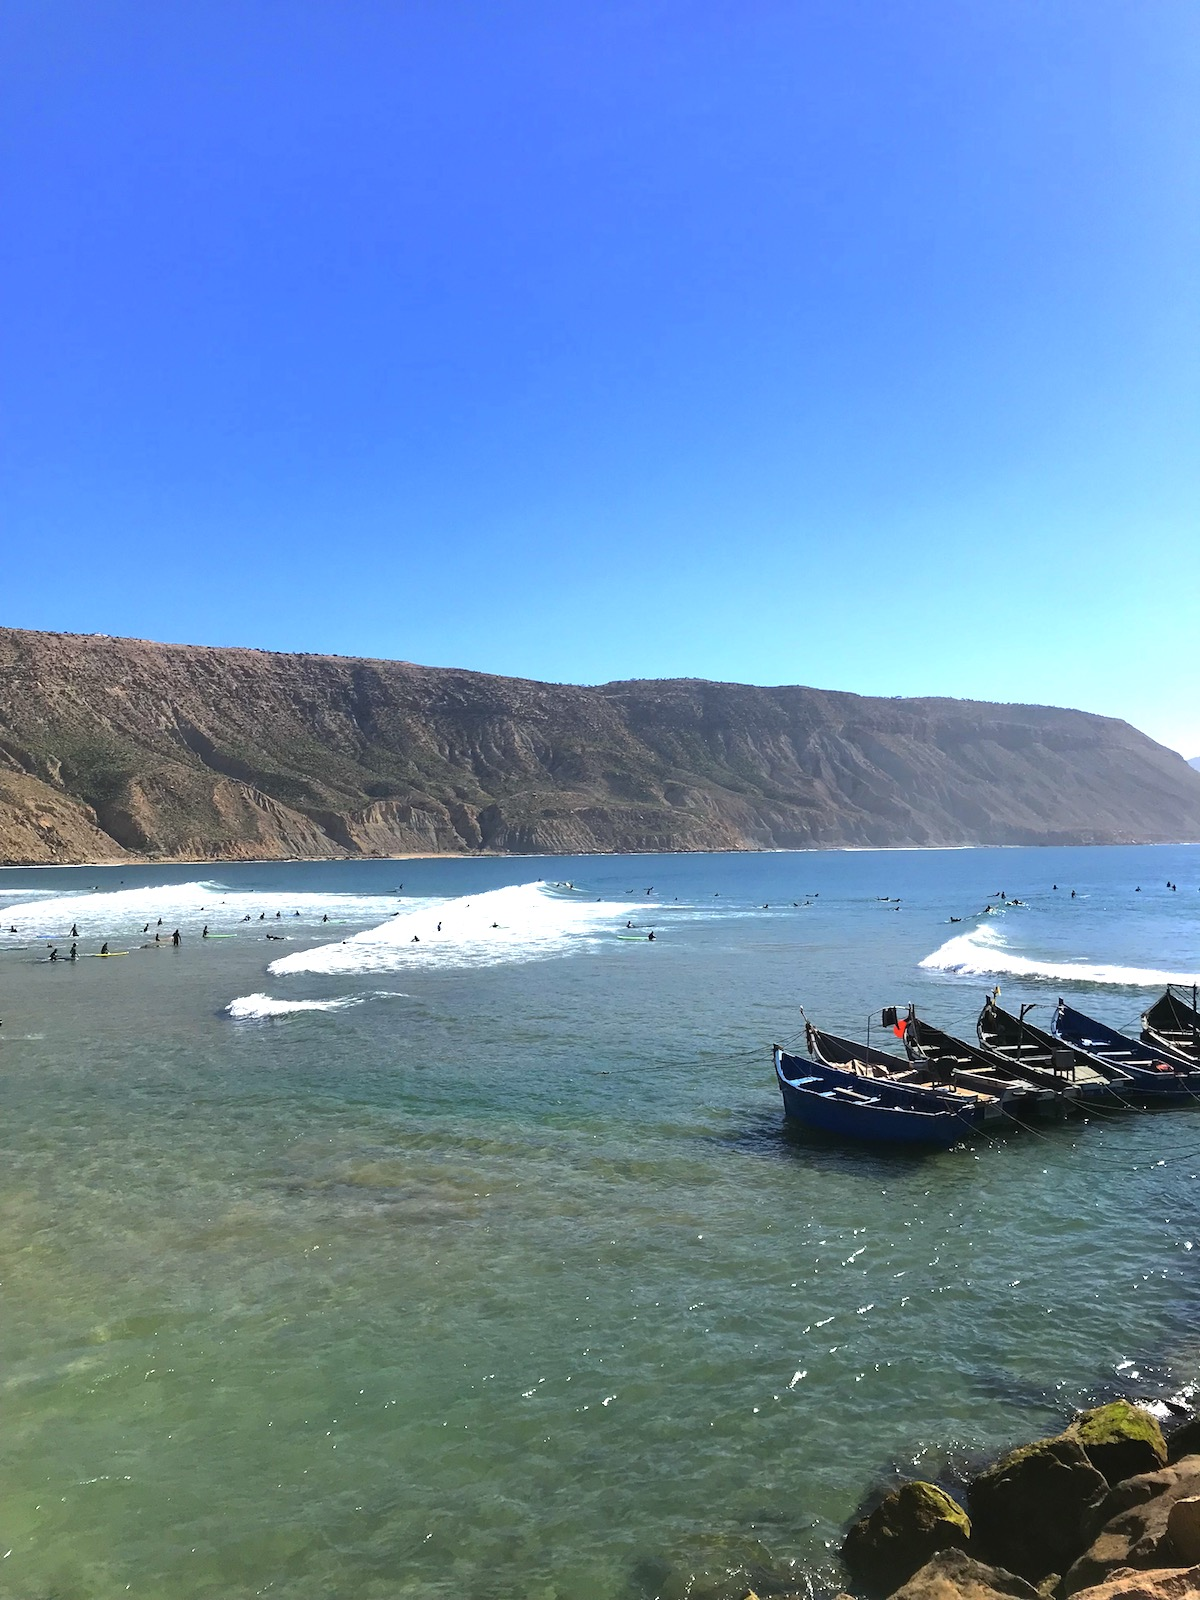 Hundred surfers in Imsouane, Morocco